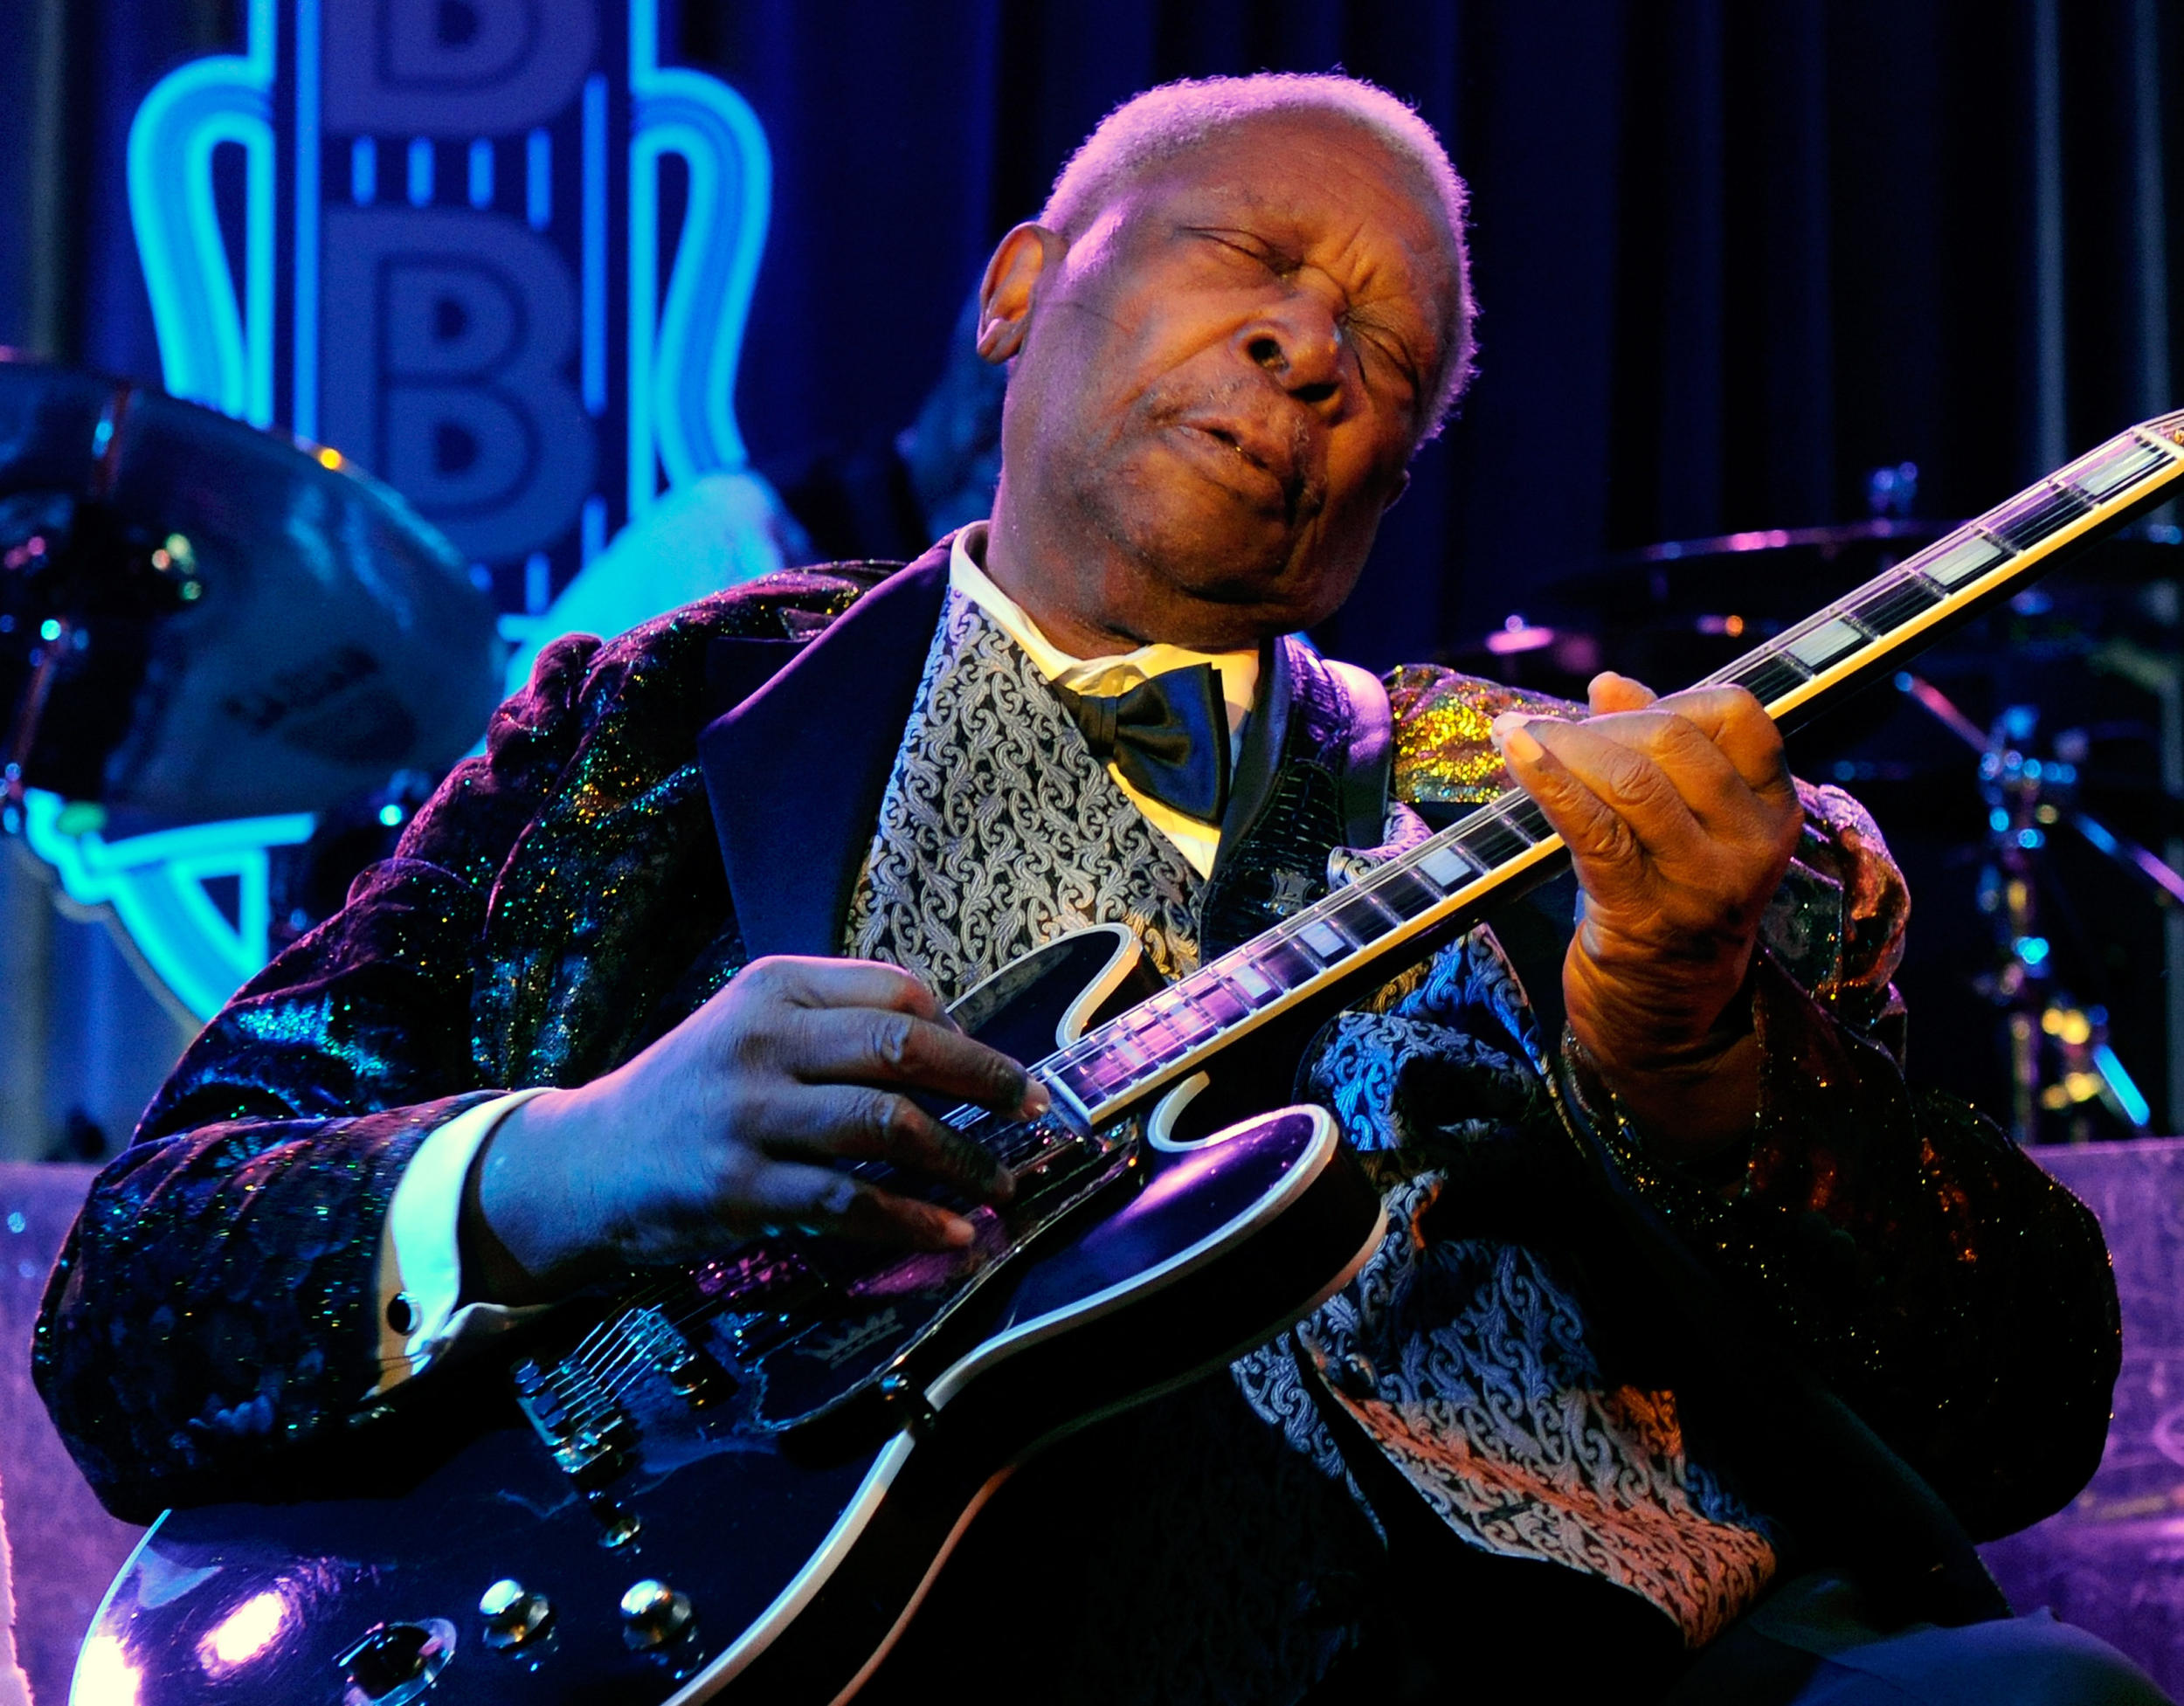 Died BB King 05/15/2015 70